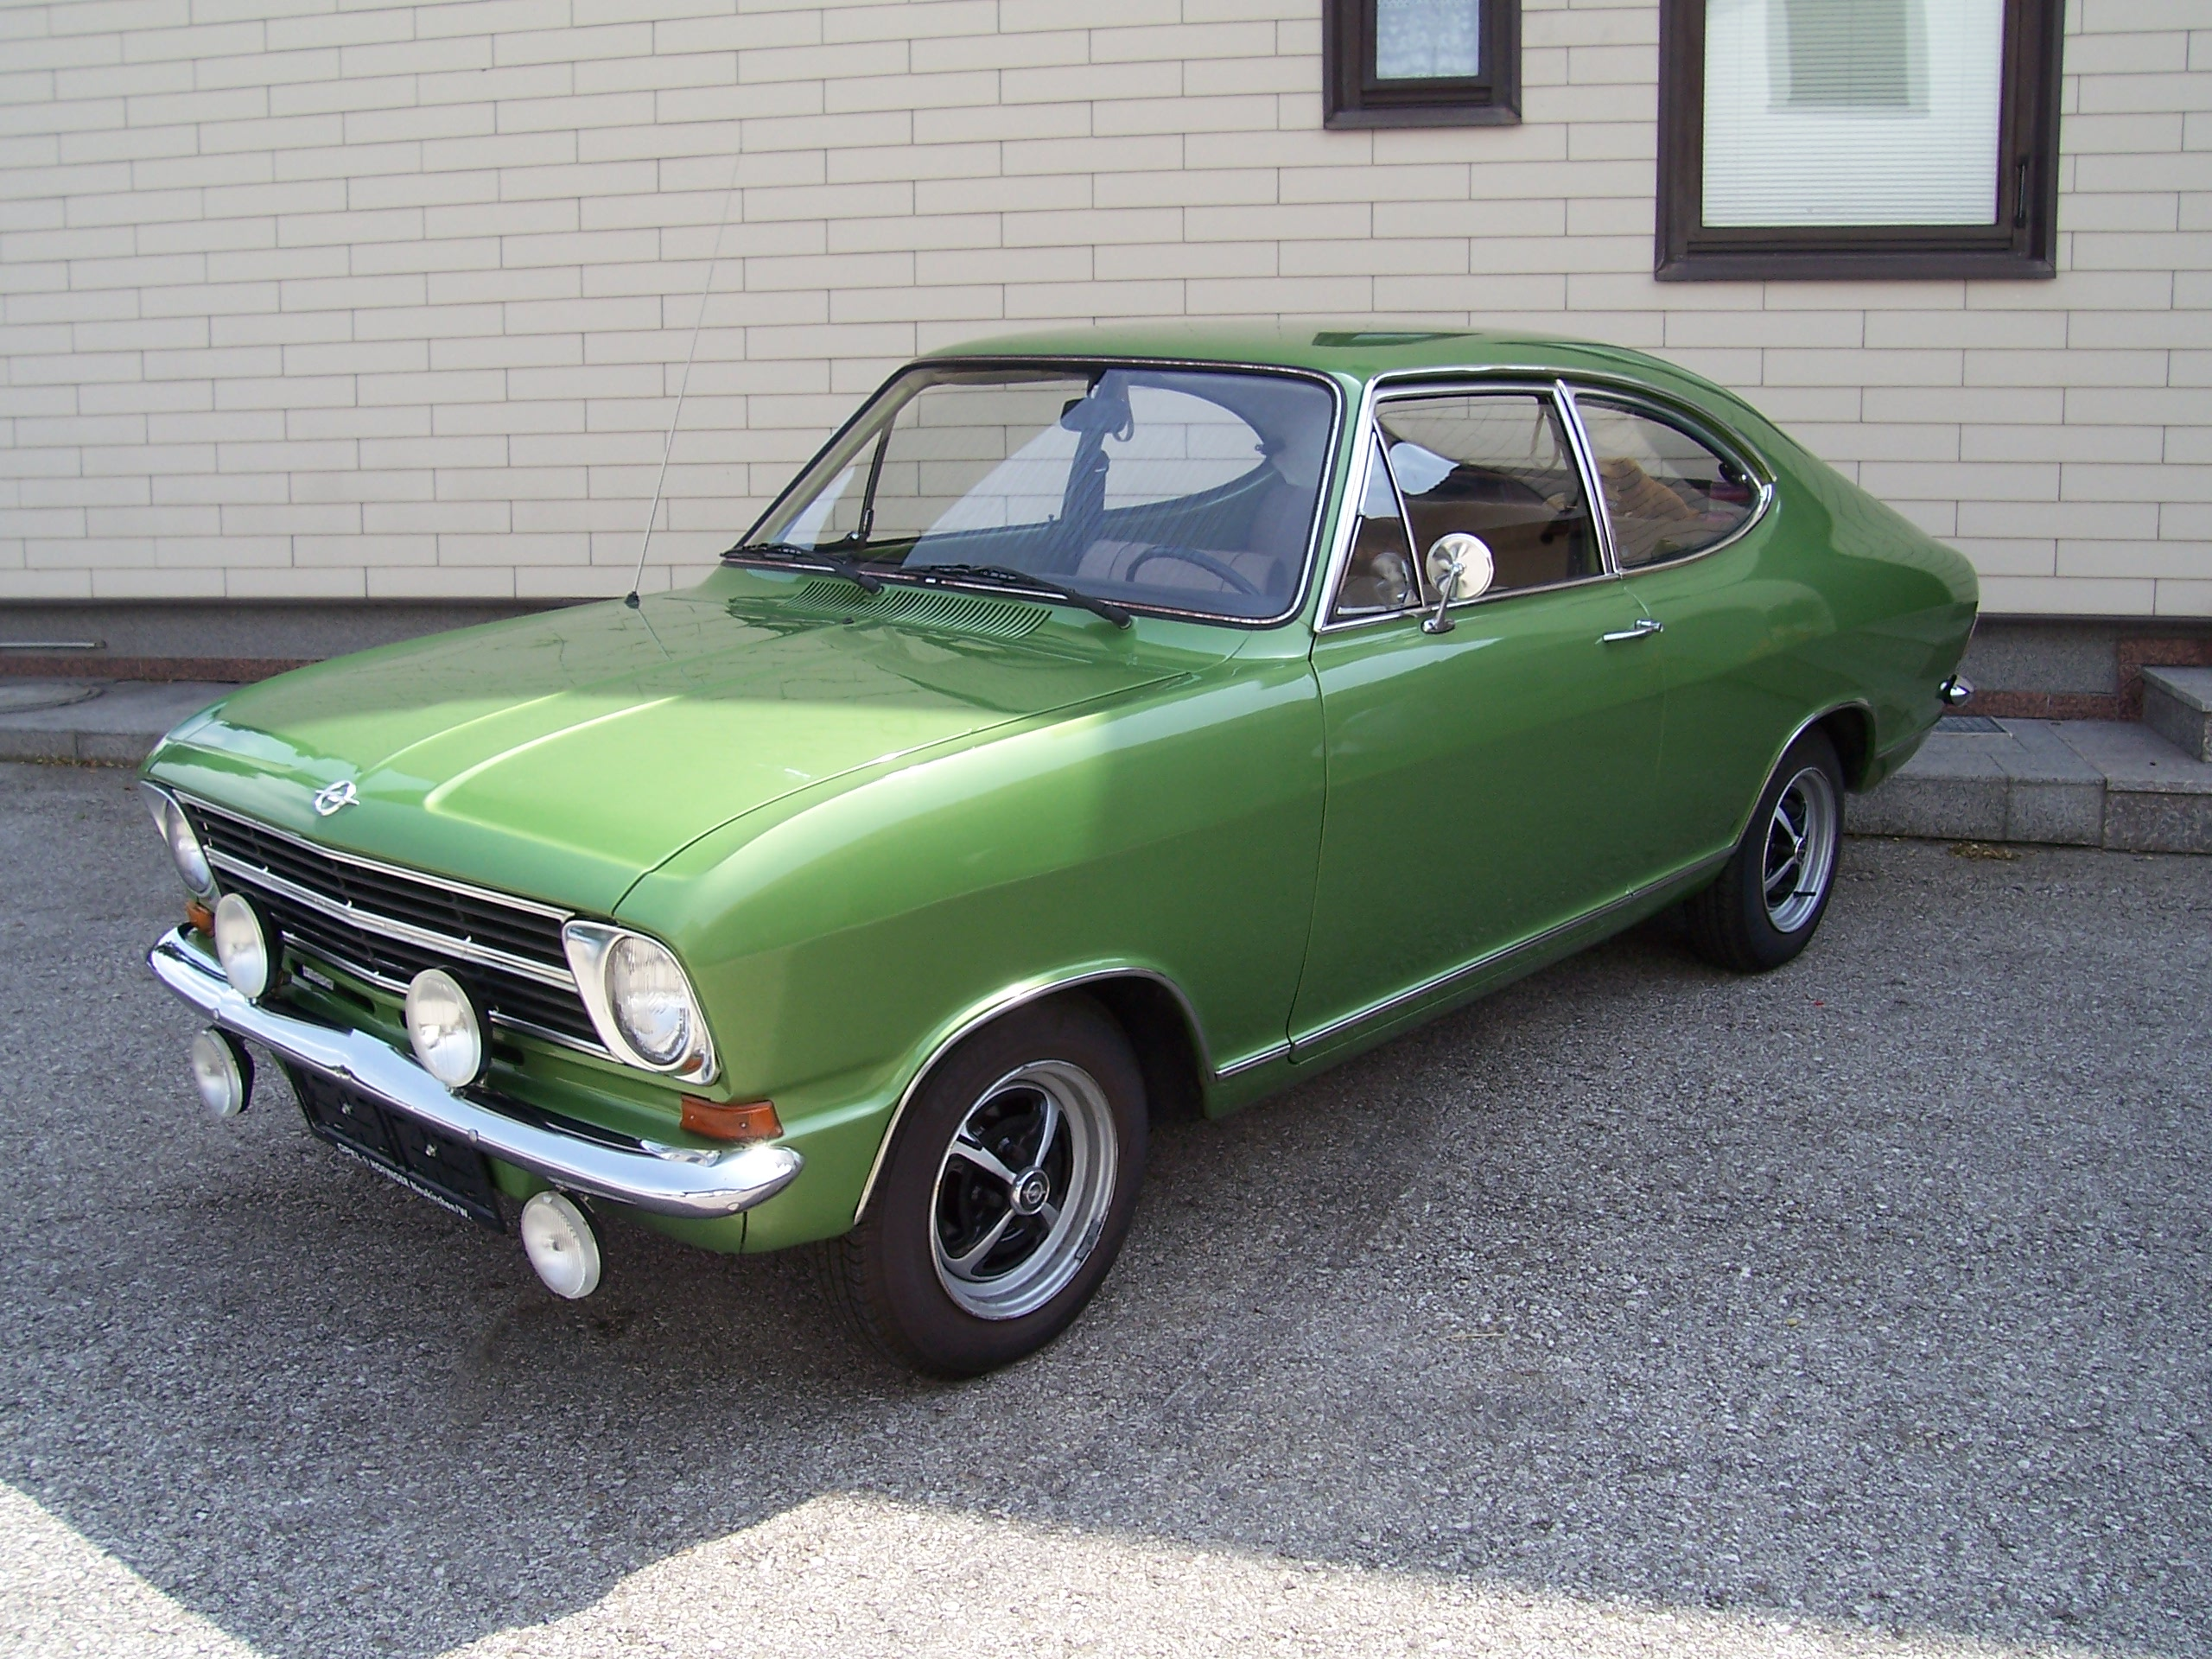 opel kadett b coupe photos reviews news specs buy car. Black Bedroom Furniture Sets. Home Design Ideas